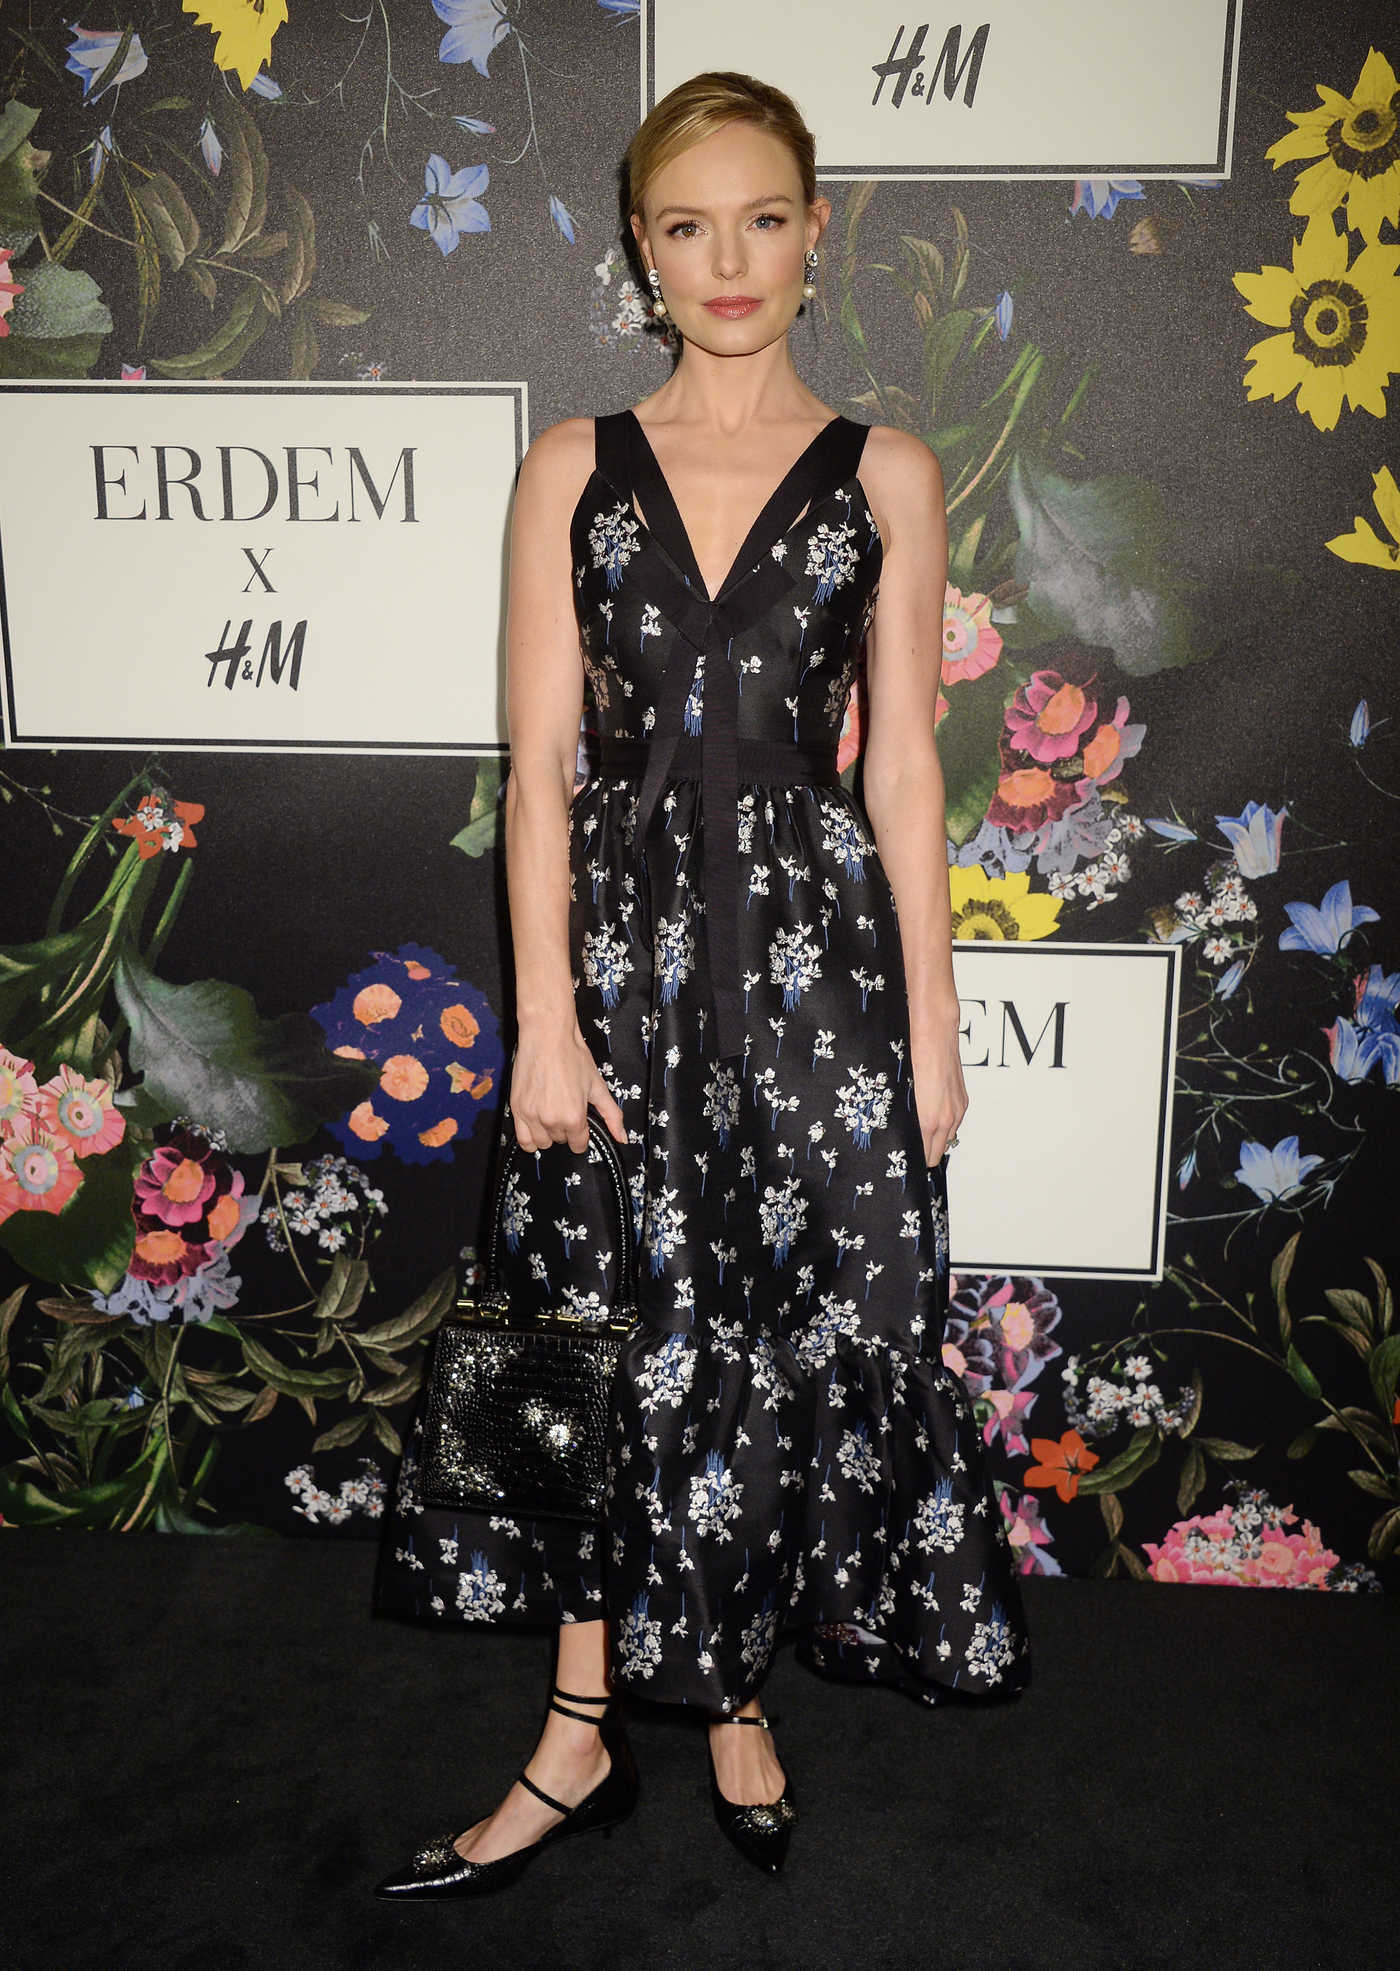 Kate Bosworth at Erdem x H&M Launch Event in Los Angeles 10/18/2017